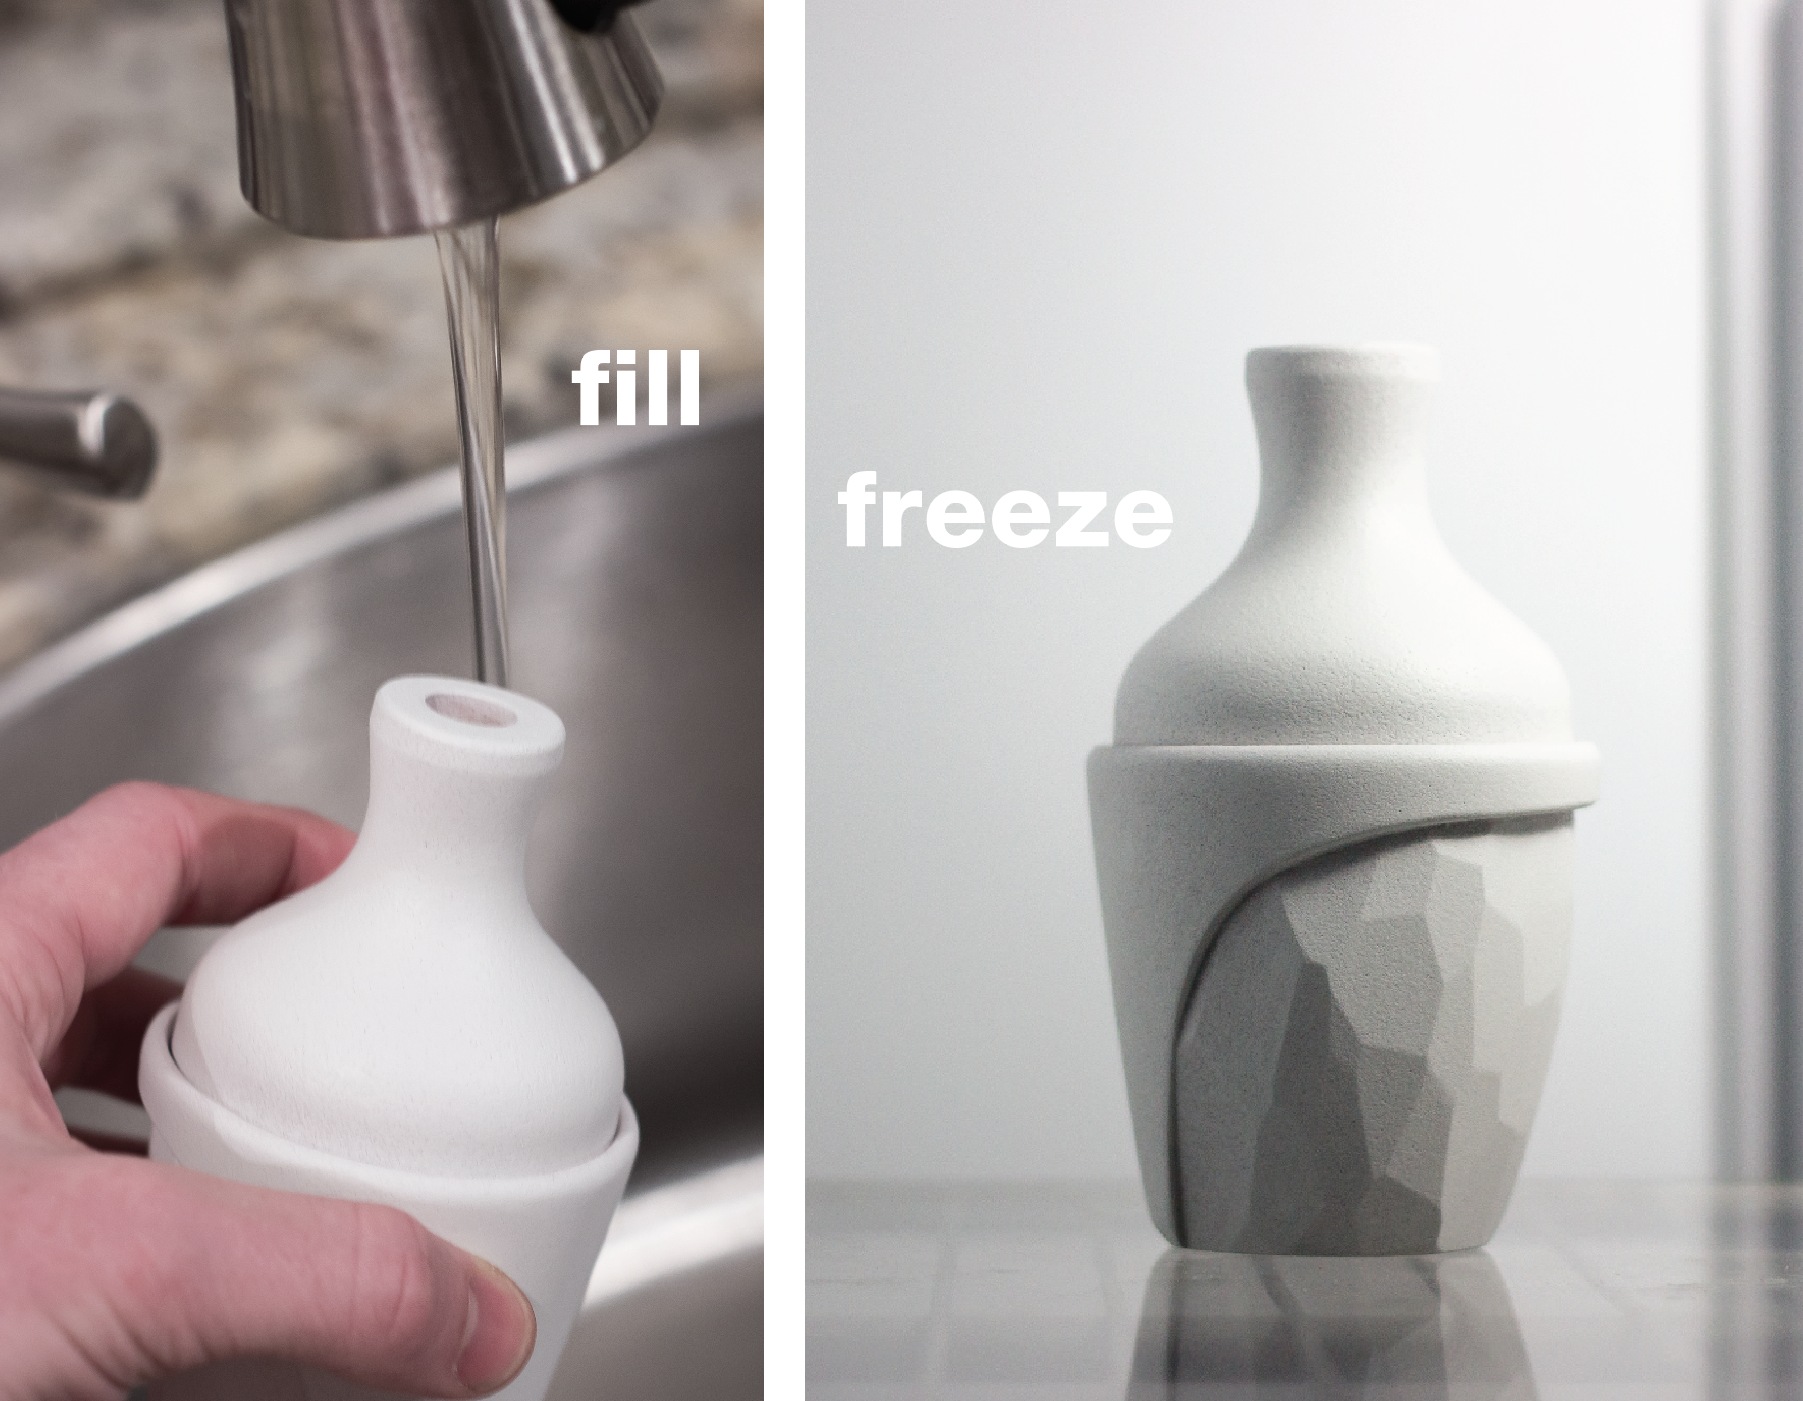 Fill the bottle with water and pop it in your freezer. Simple.